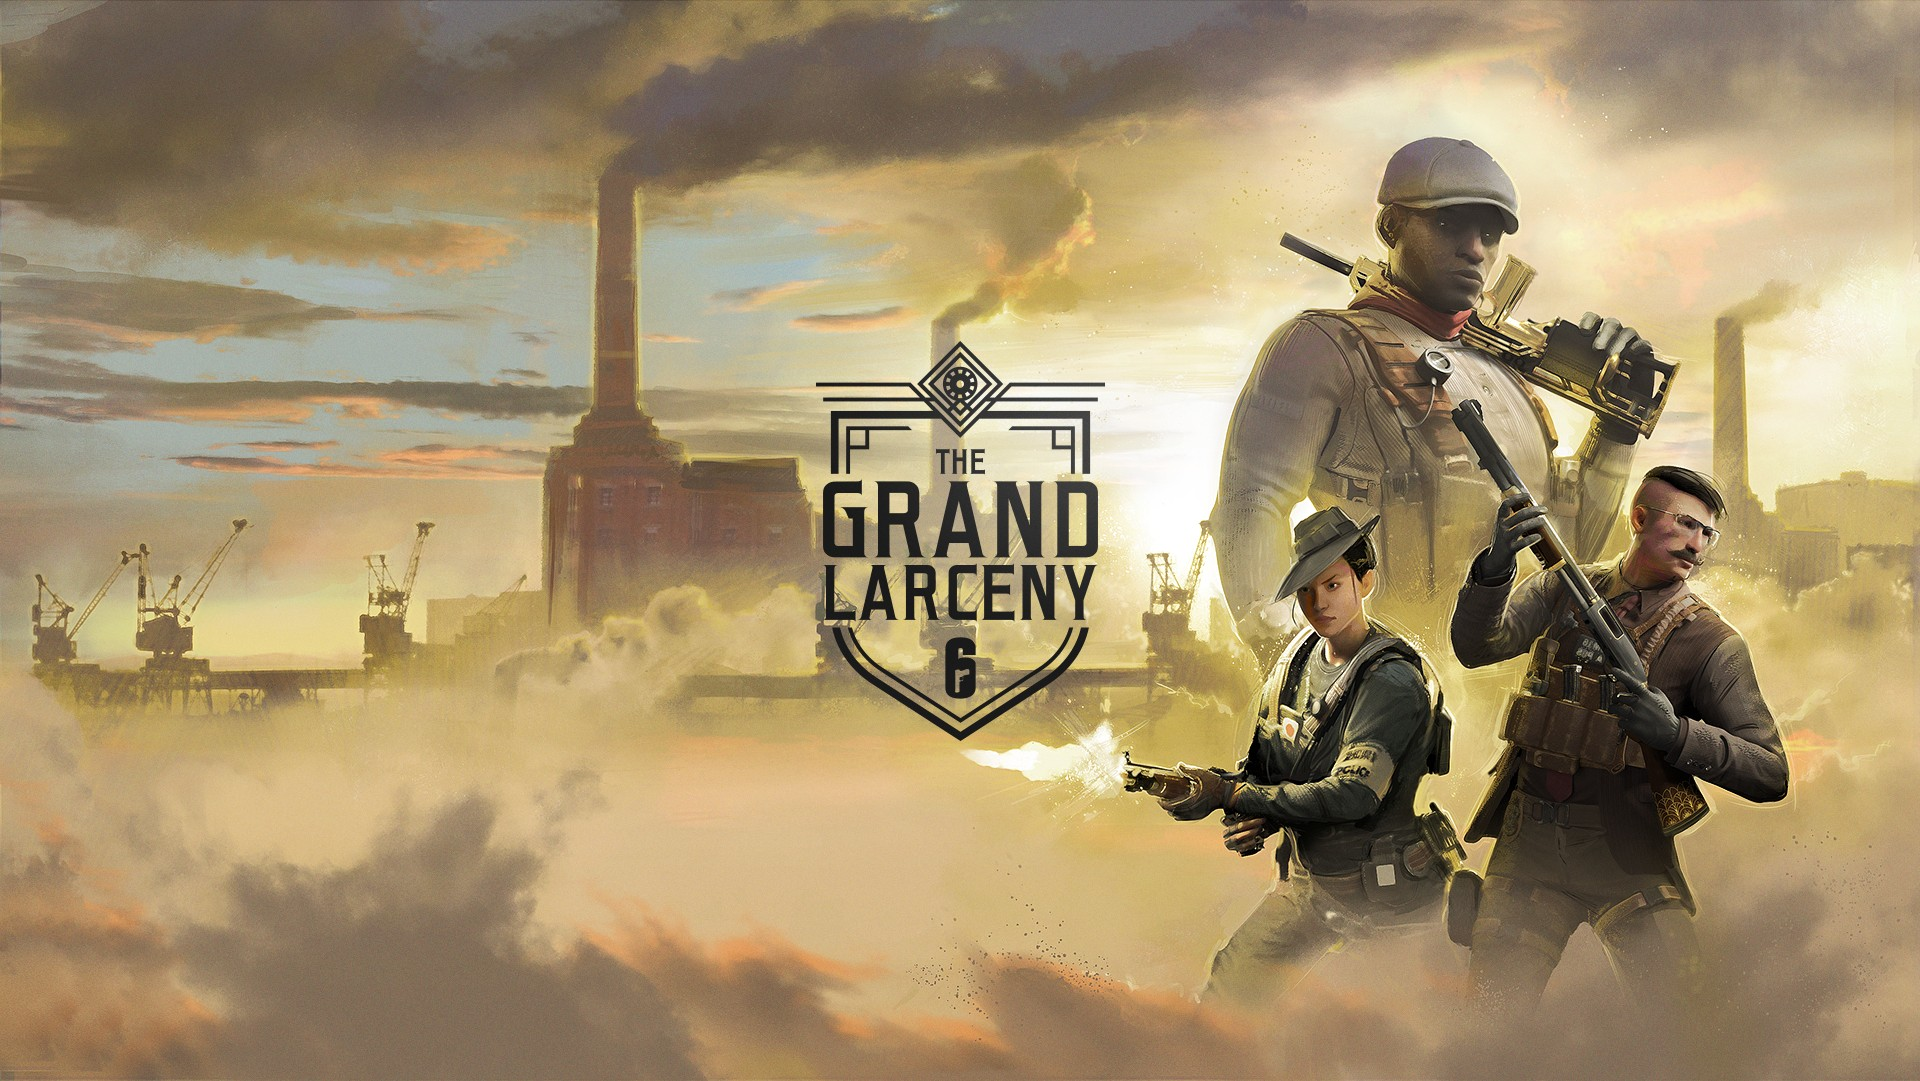 Rainbow Six Siege has a new limited time mode The Grand Larceny